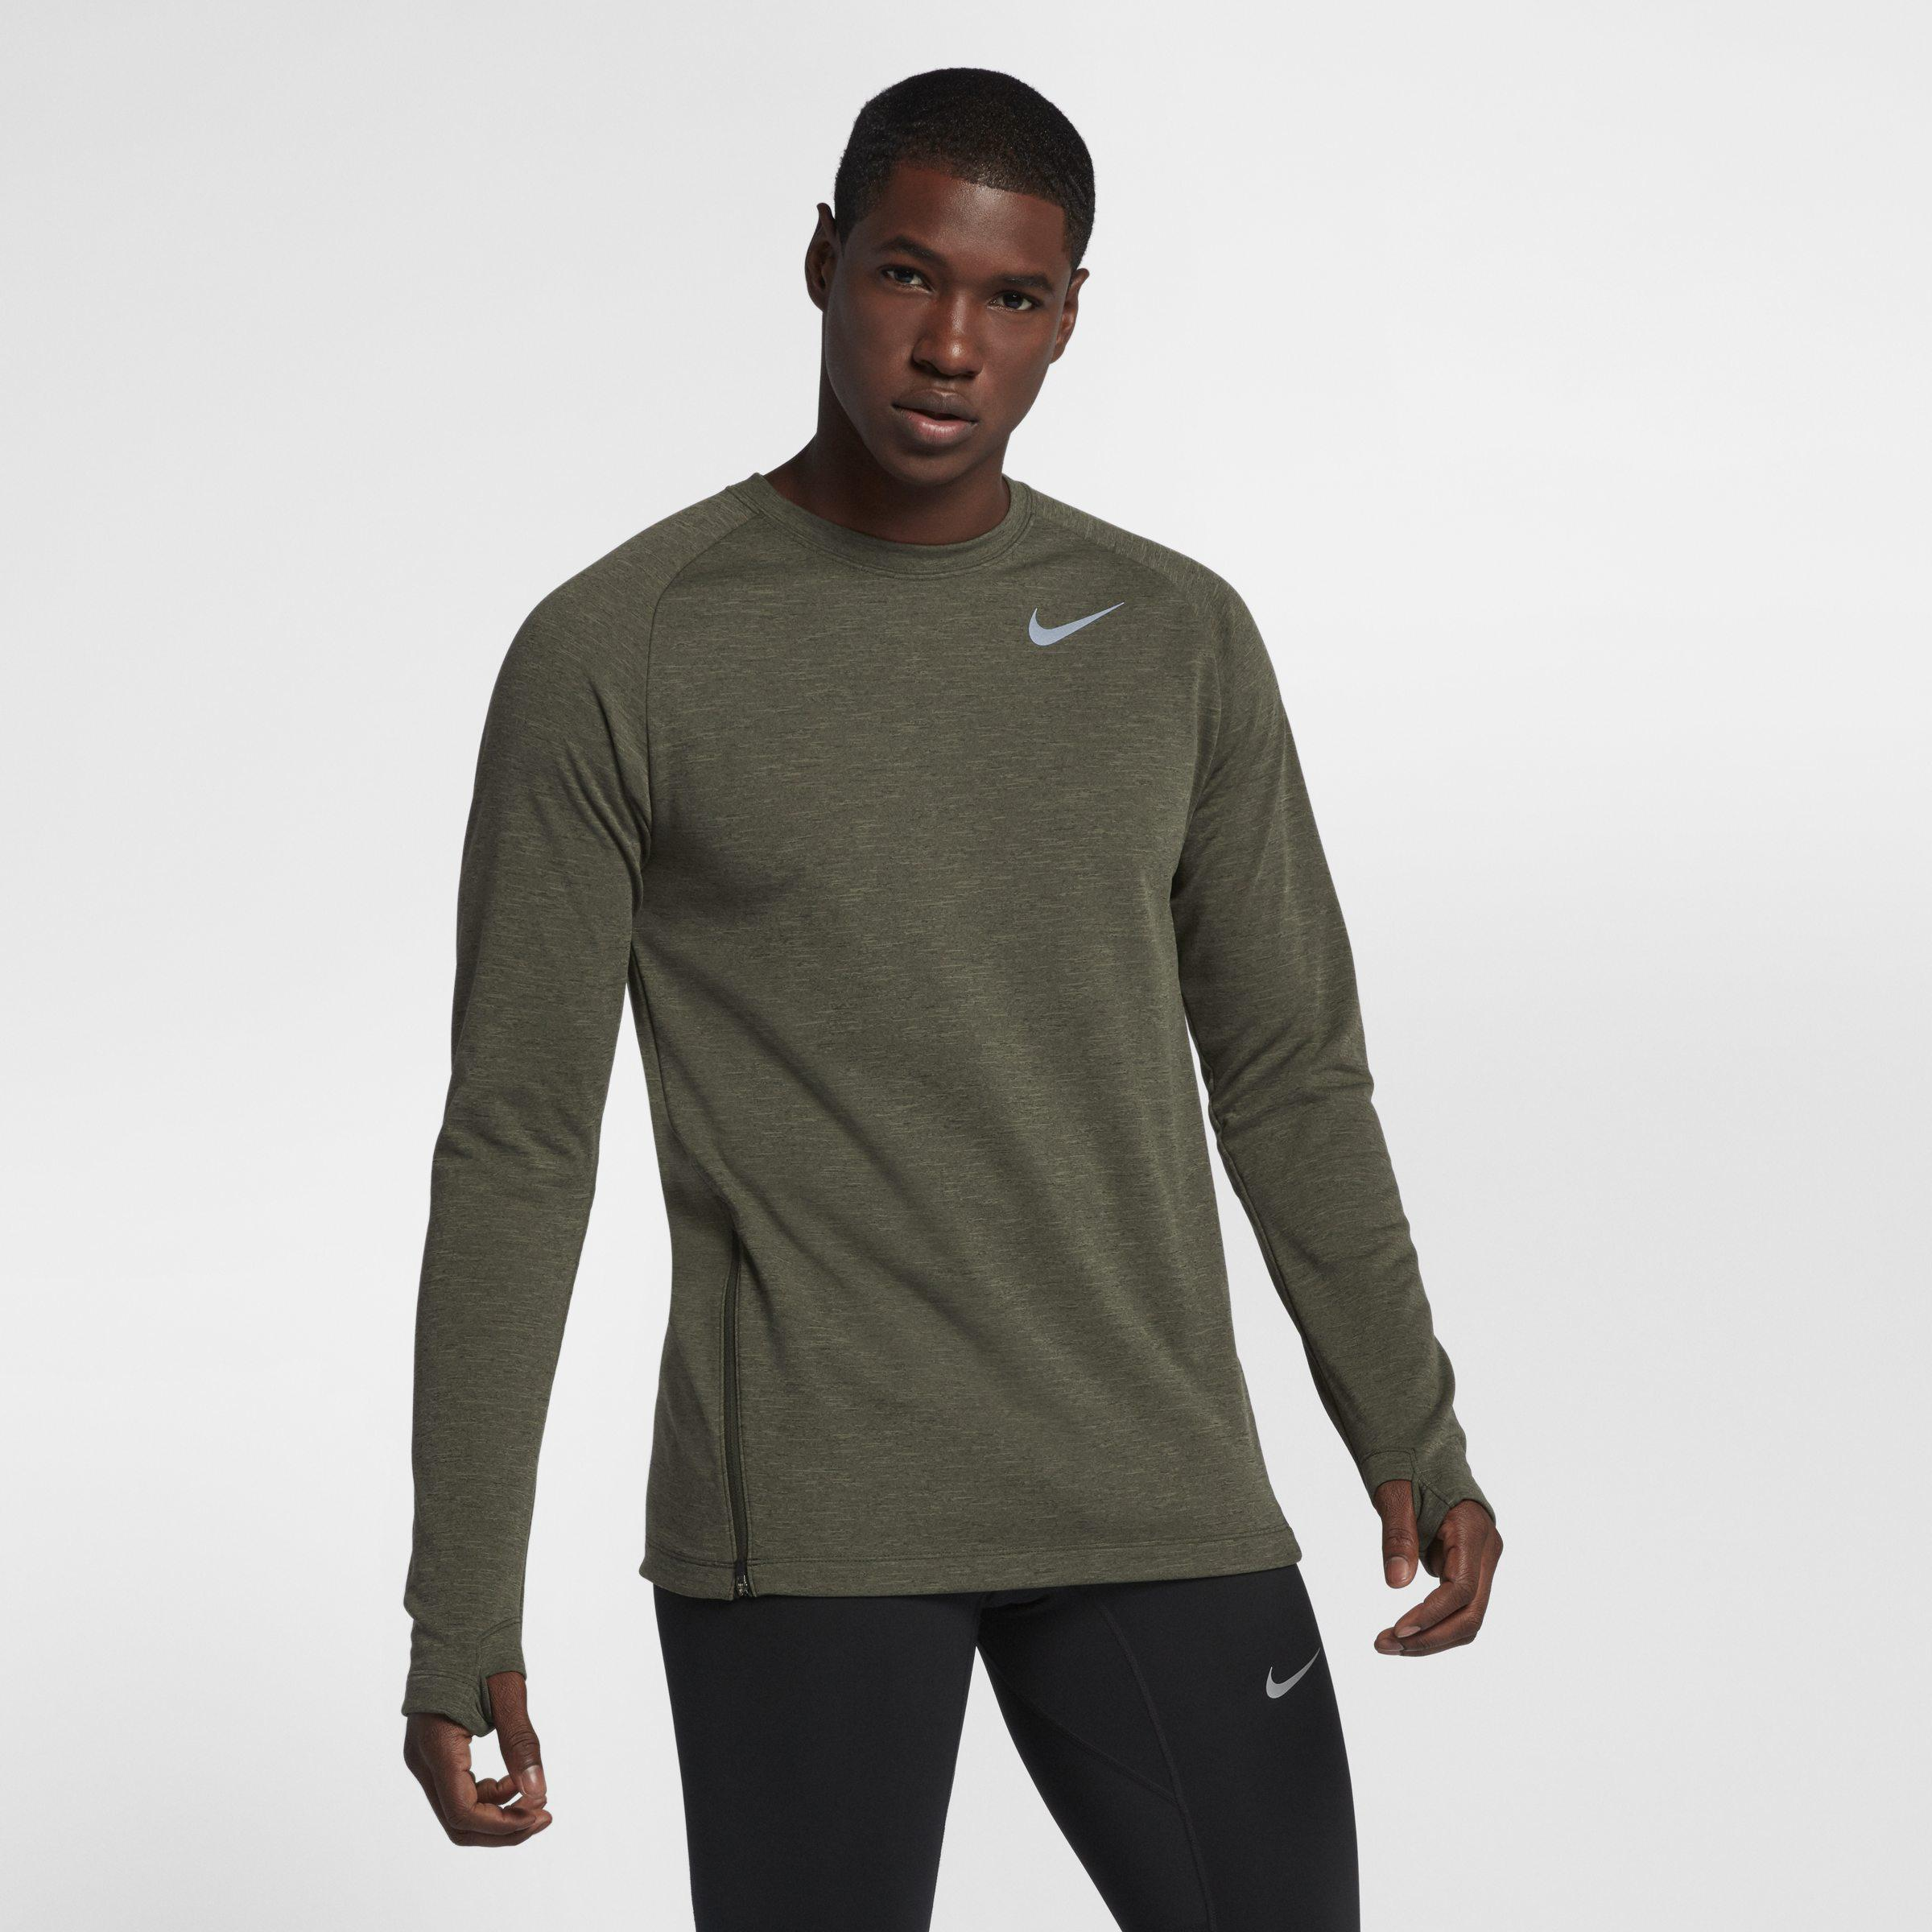 ecfd47c24 Nike Therma-sphere Element Long-sleeve Running Top in Green for Men ...